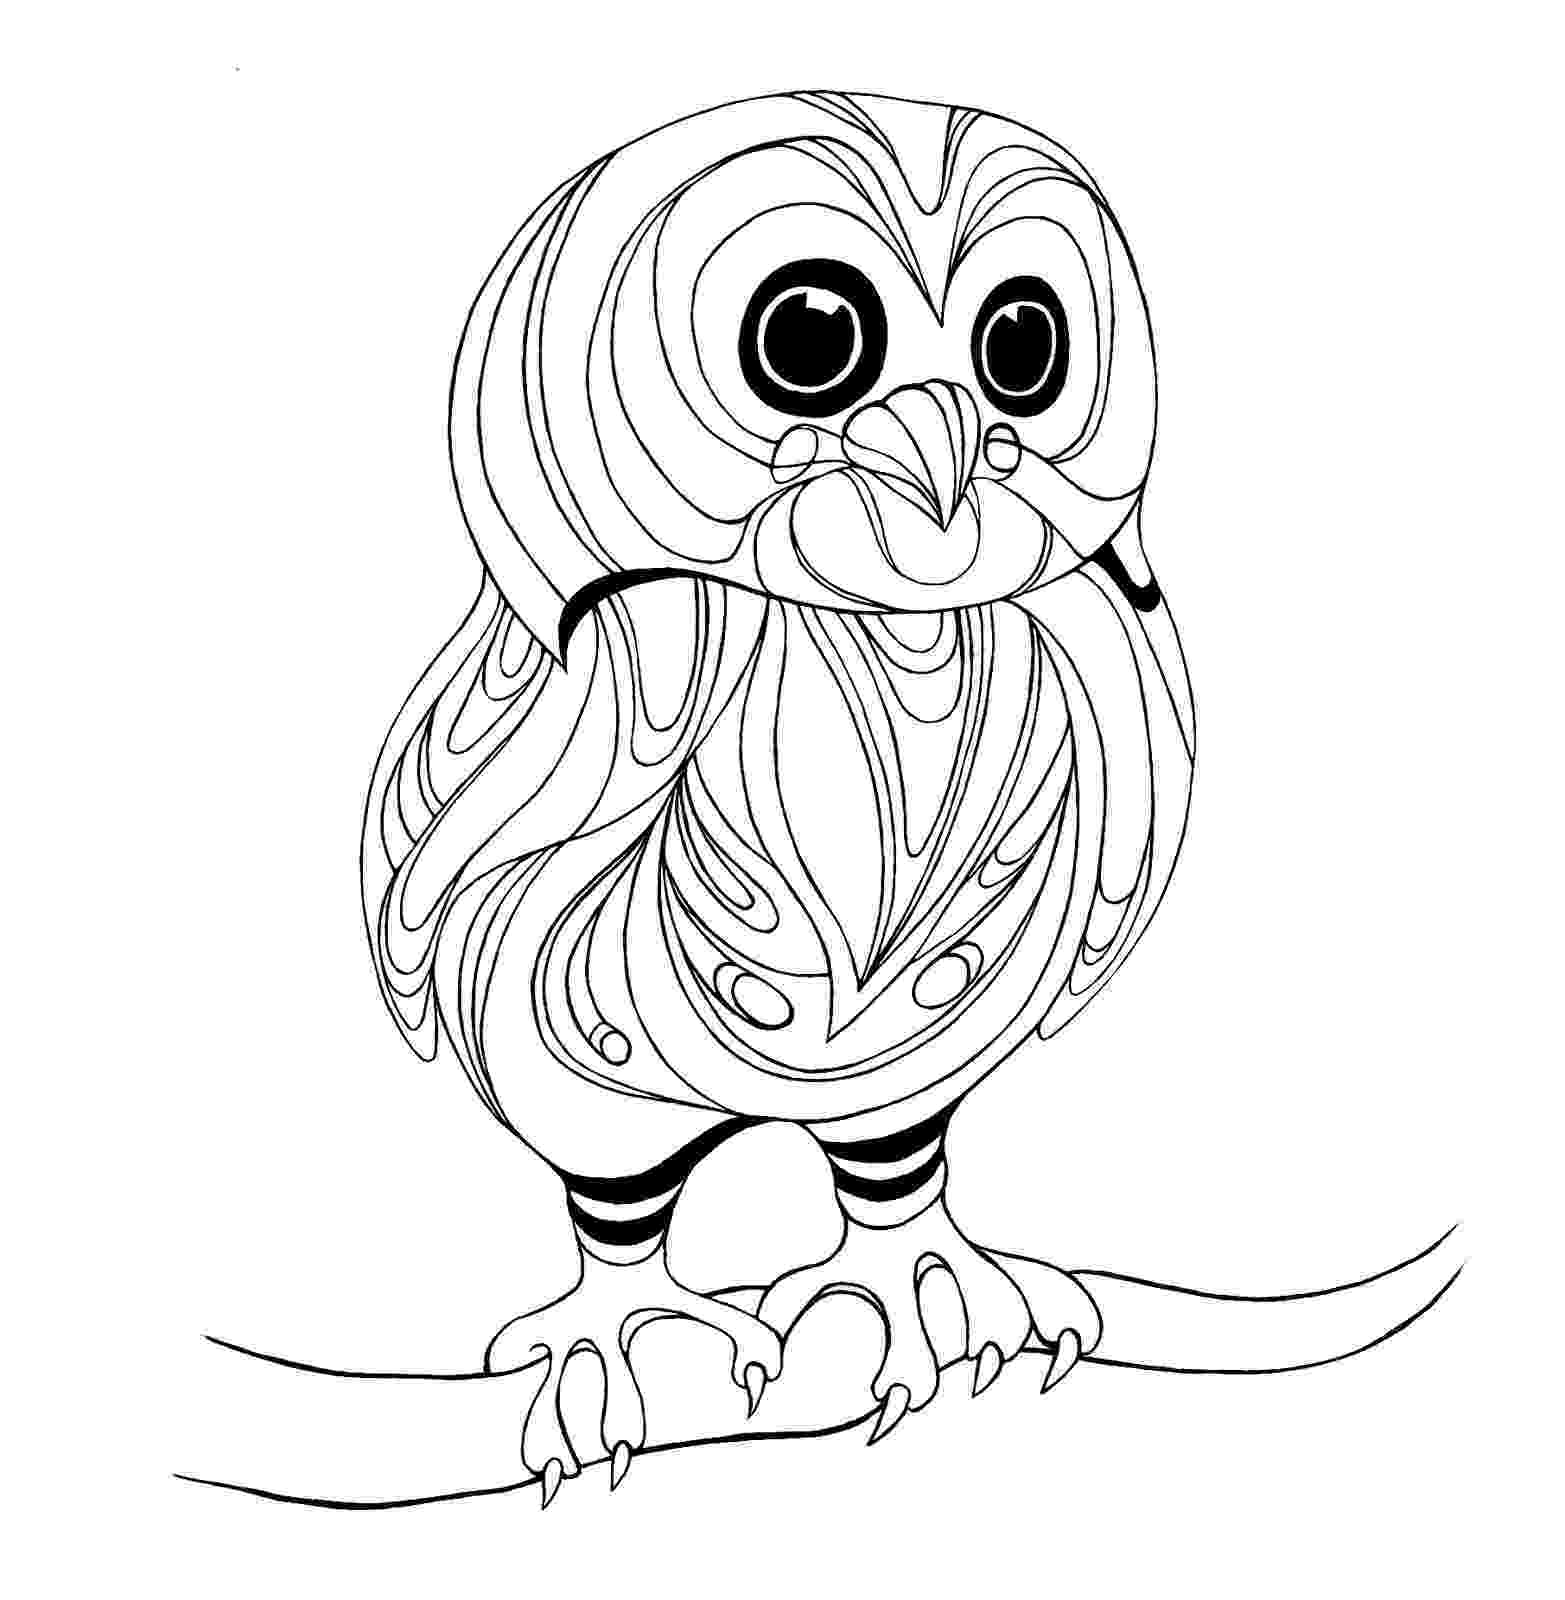 owl color page free printable owl coloring pages for kids cool2bkids page owl color